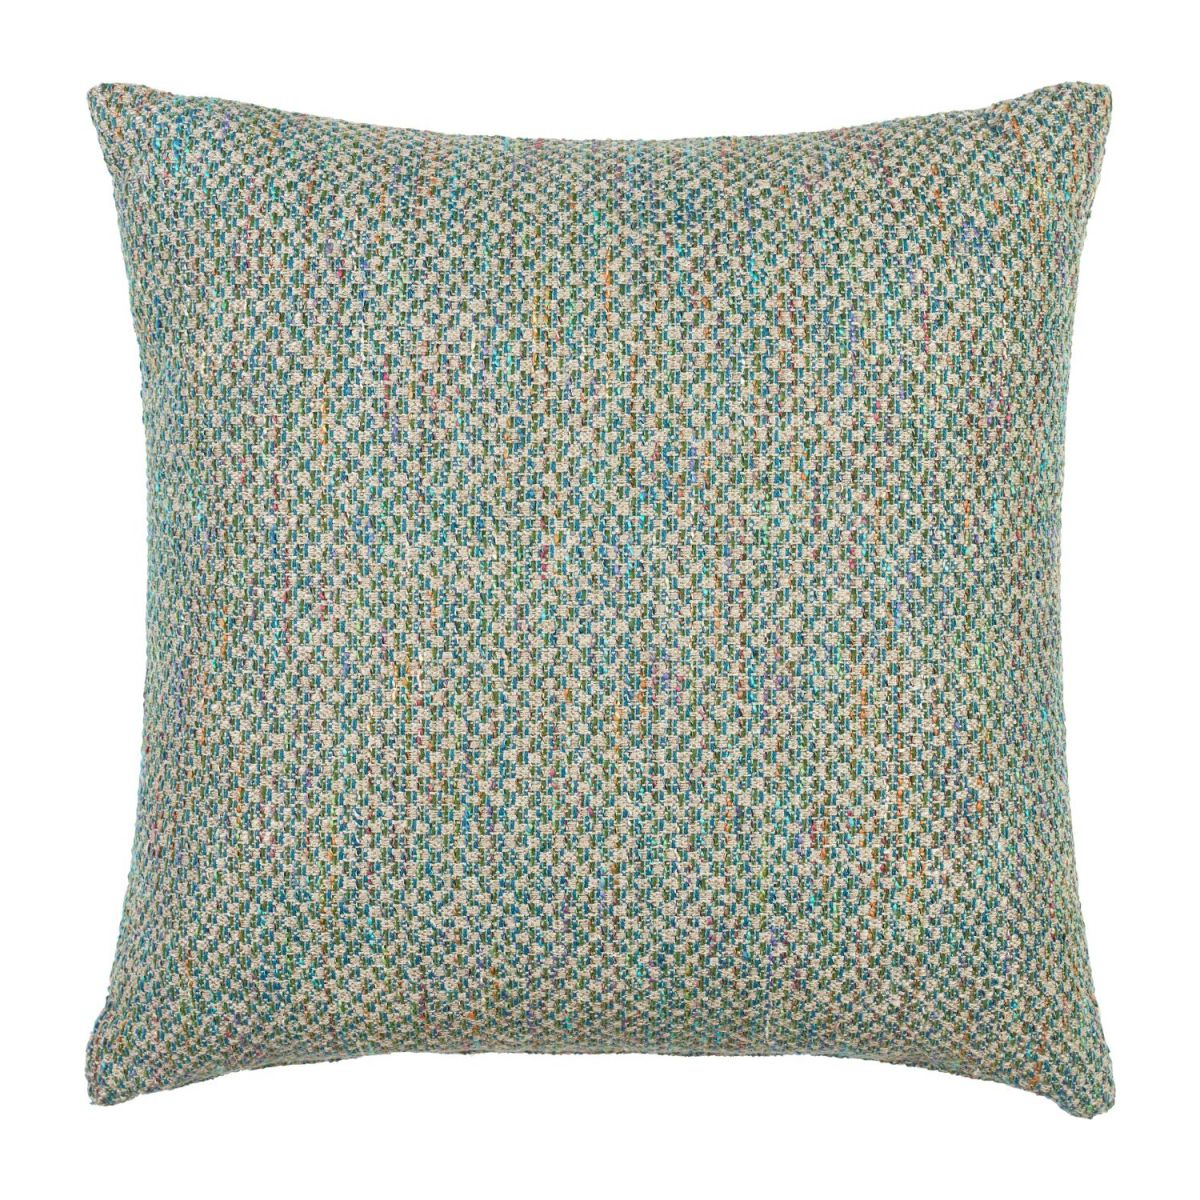 Cushion made of fabric 47x47, green n°1